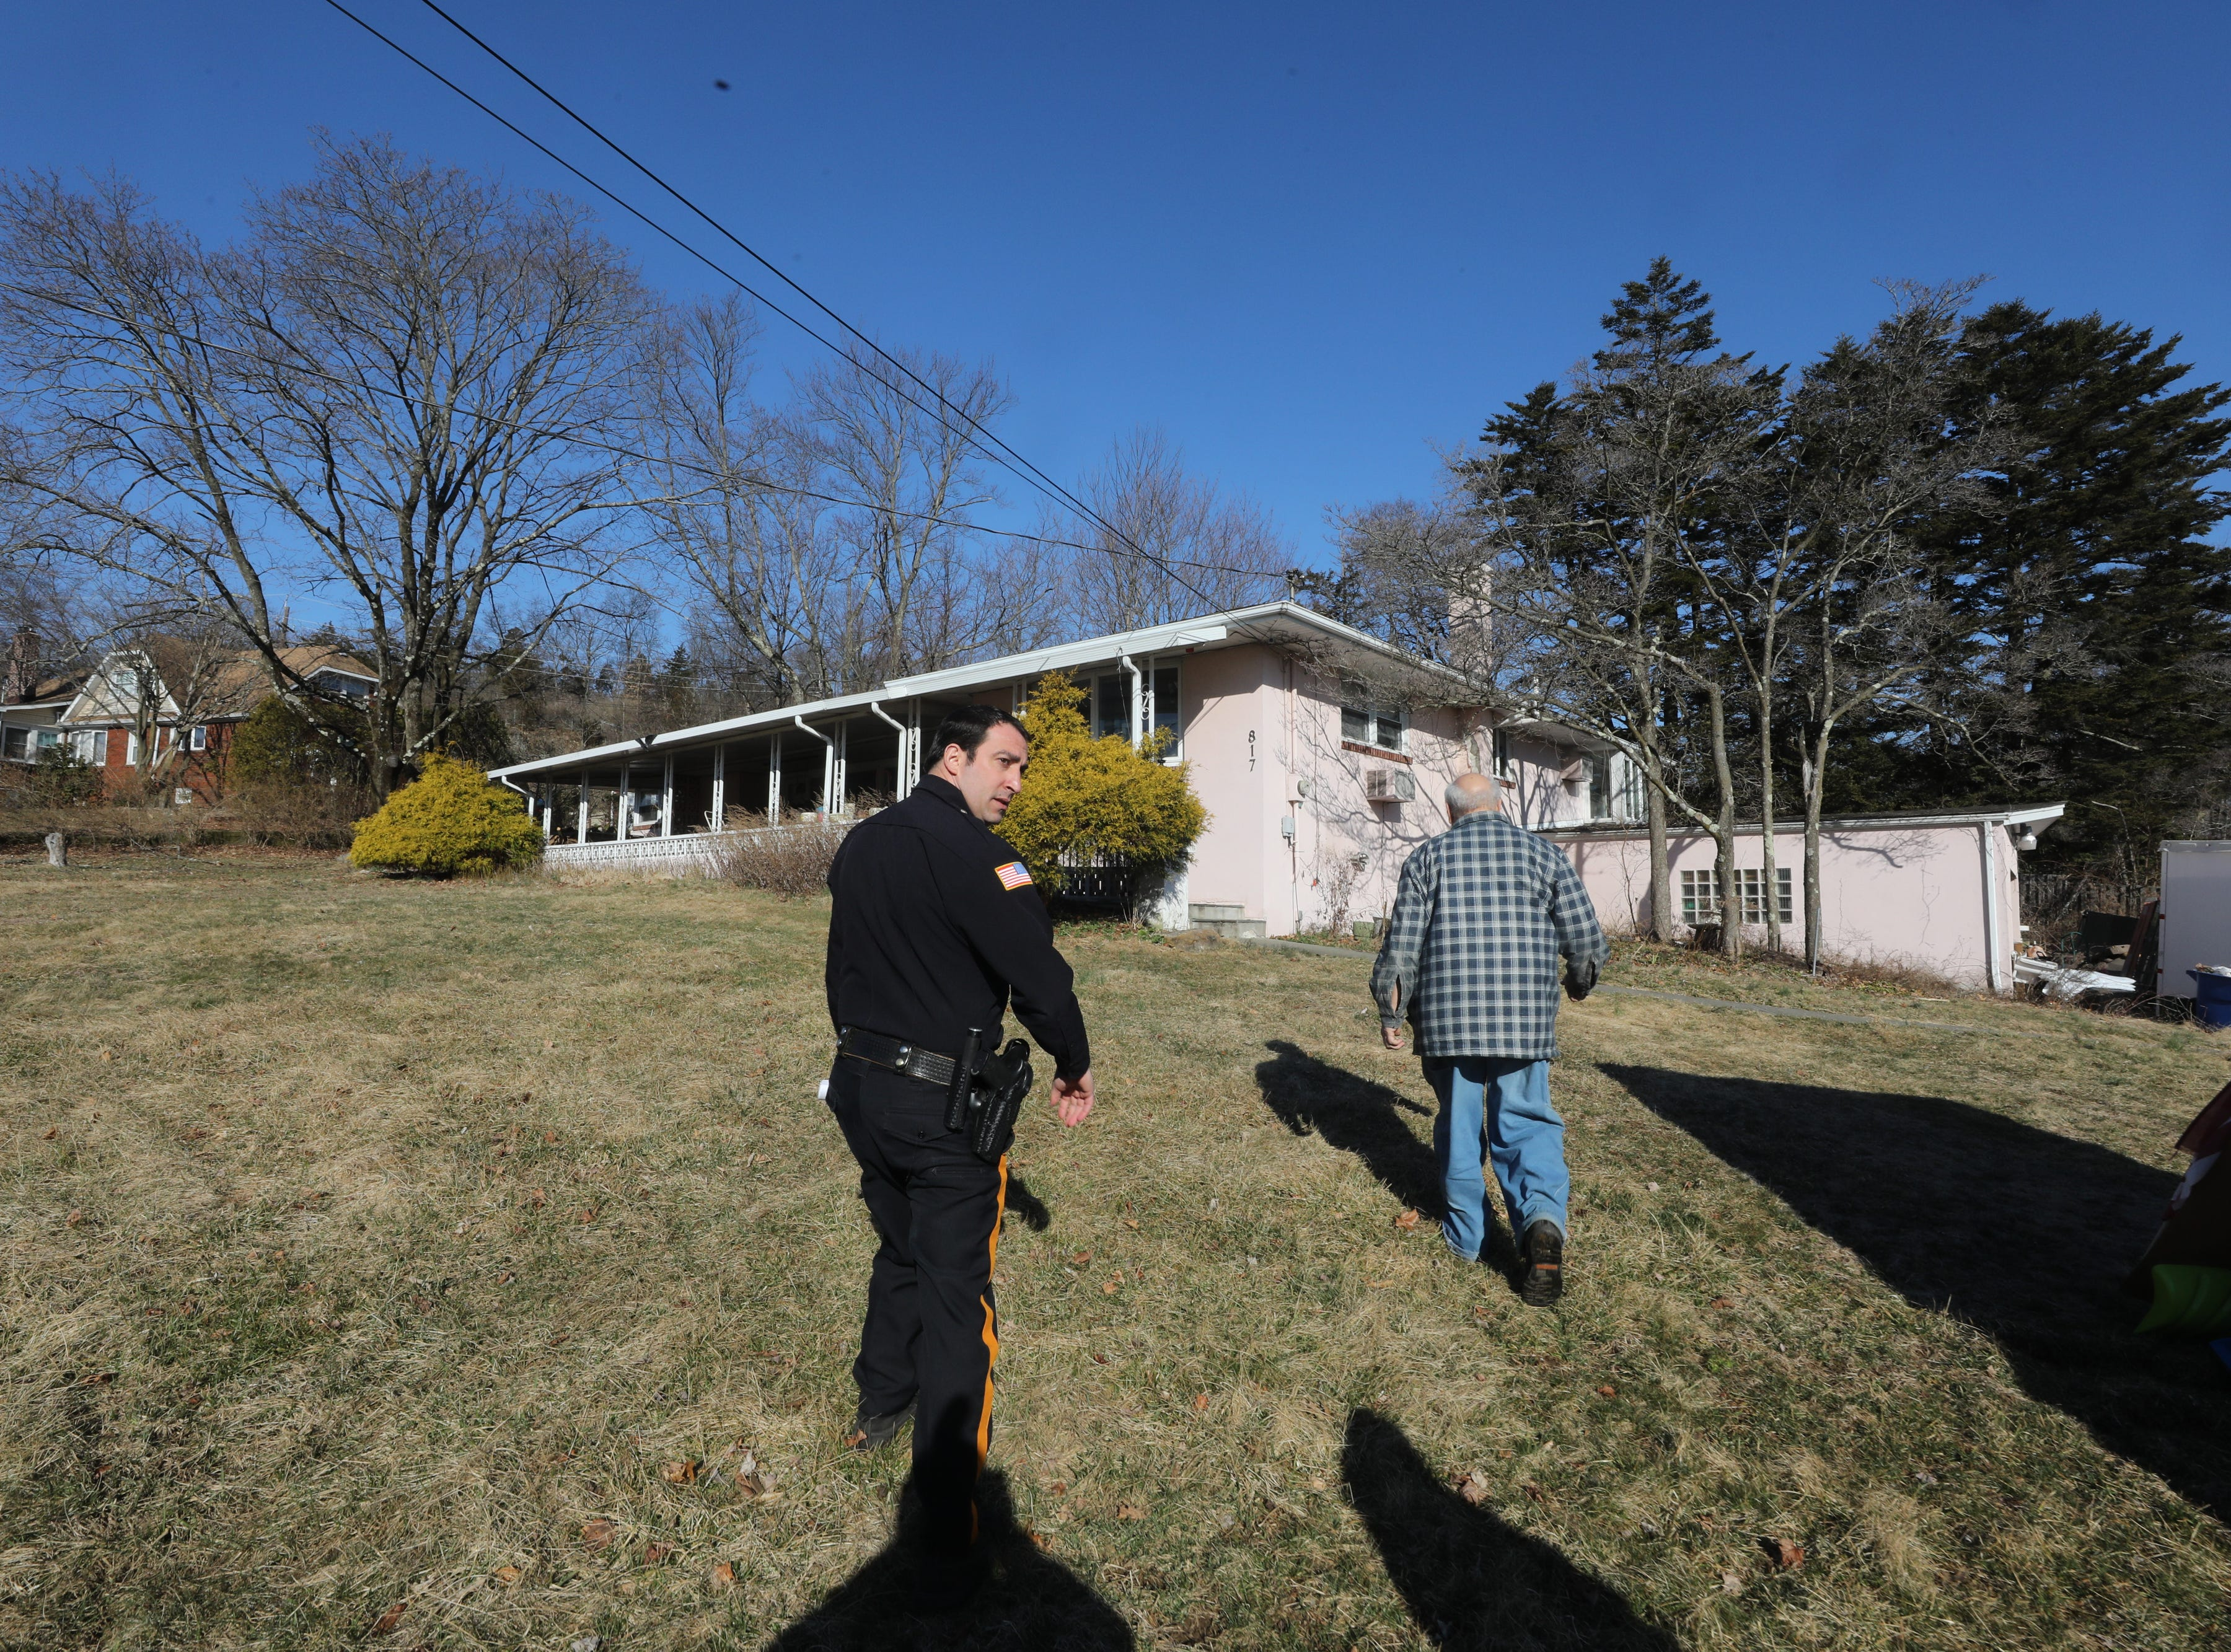 Passaic County Sheriff's Officer Nick D'Agostino and Charles D'Alessandro walk to D'Alessandro home that he is being evicted from on March 19, 2019, after failing to pay the mortgage for the past 10 years.